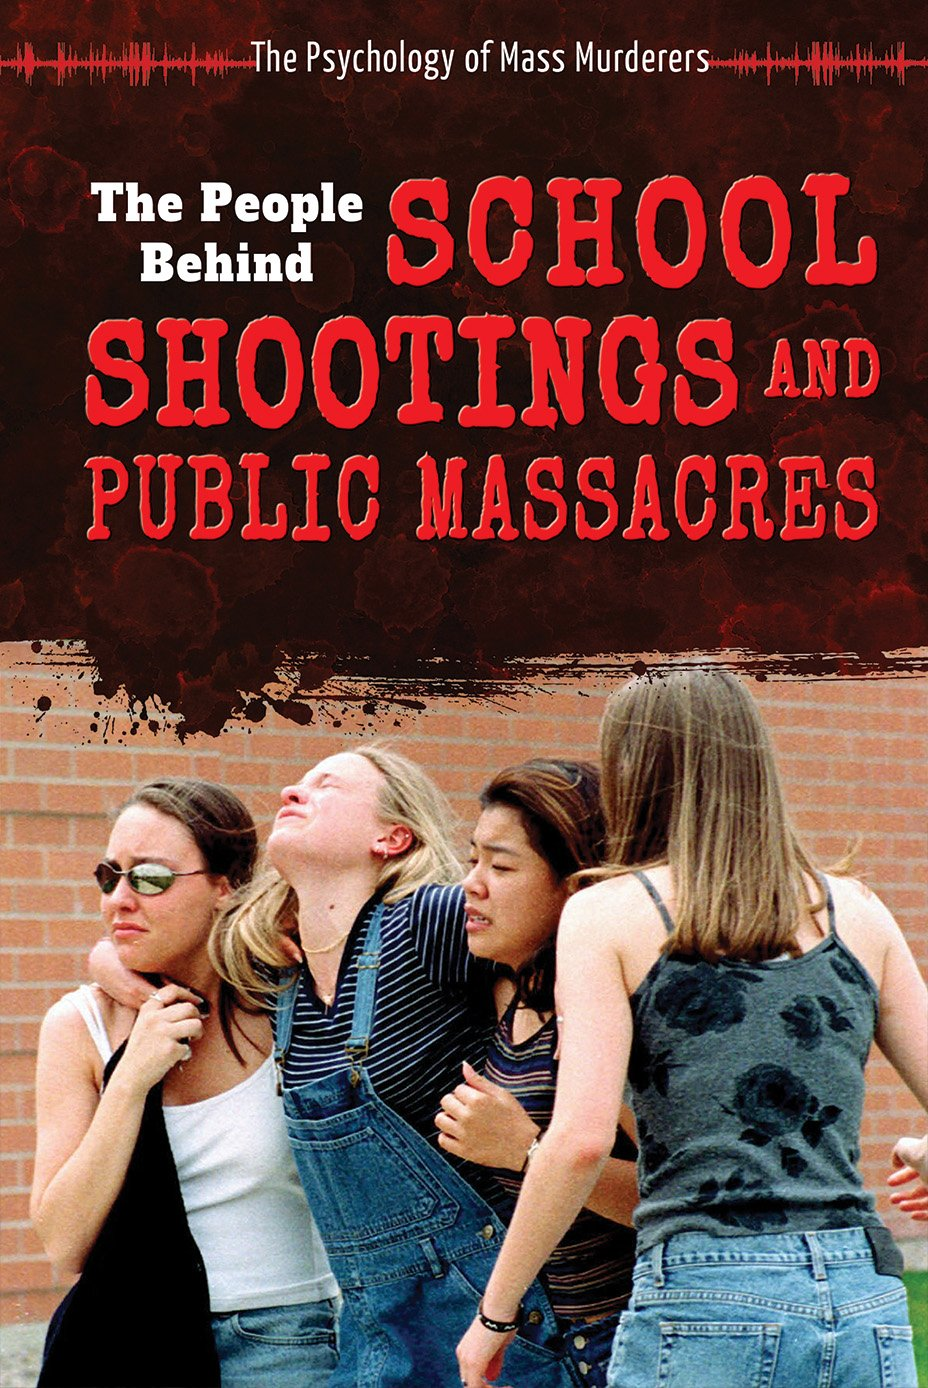 Read Online The People Behind School Shootings and Public Massacres (The Psychology of Mass Murderers) PDF